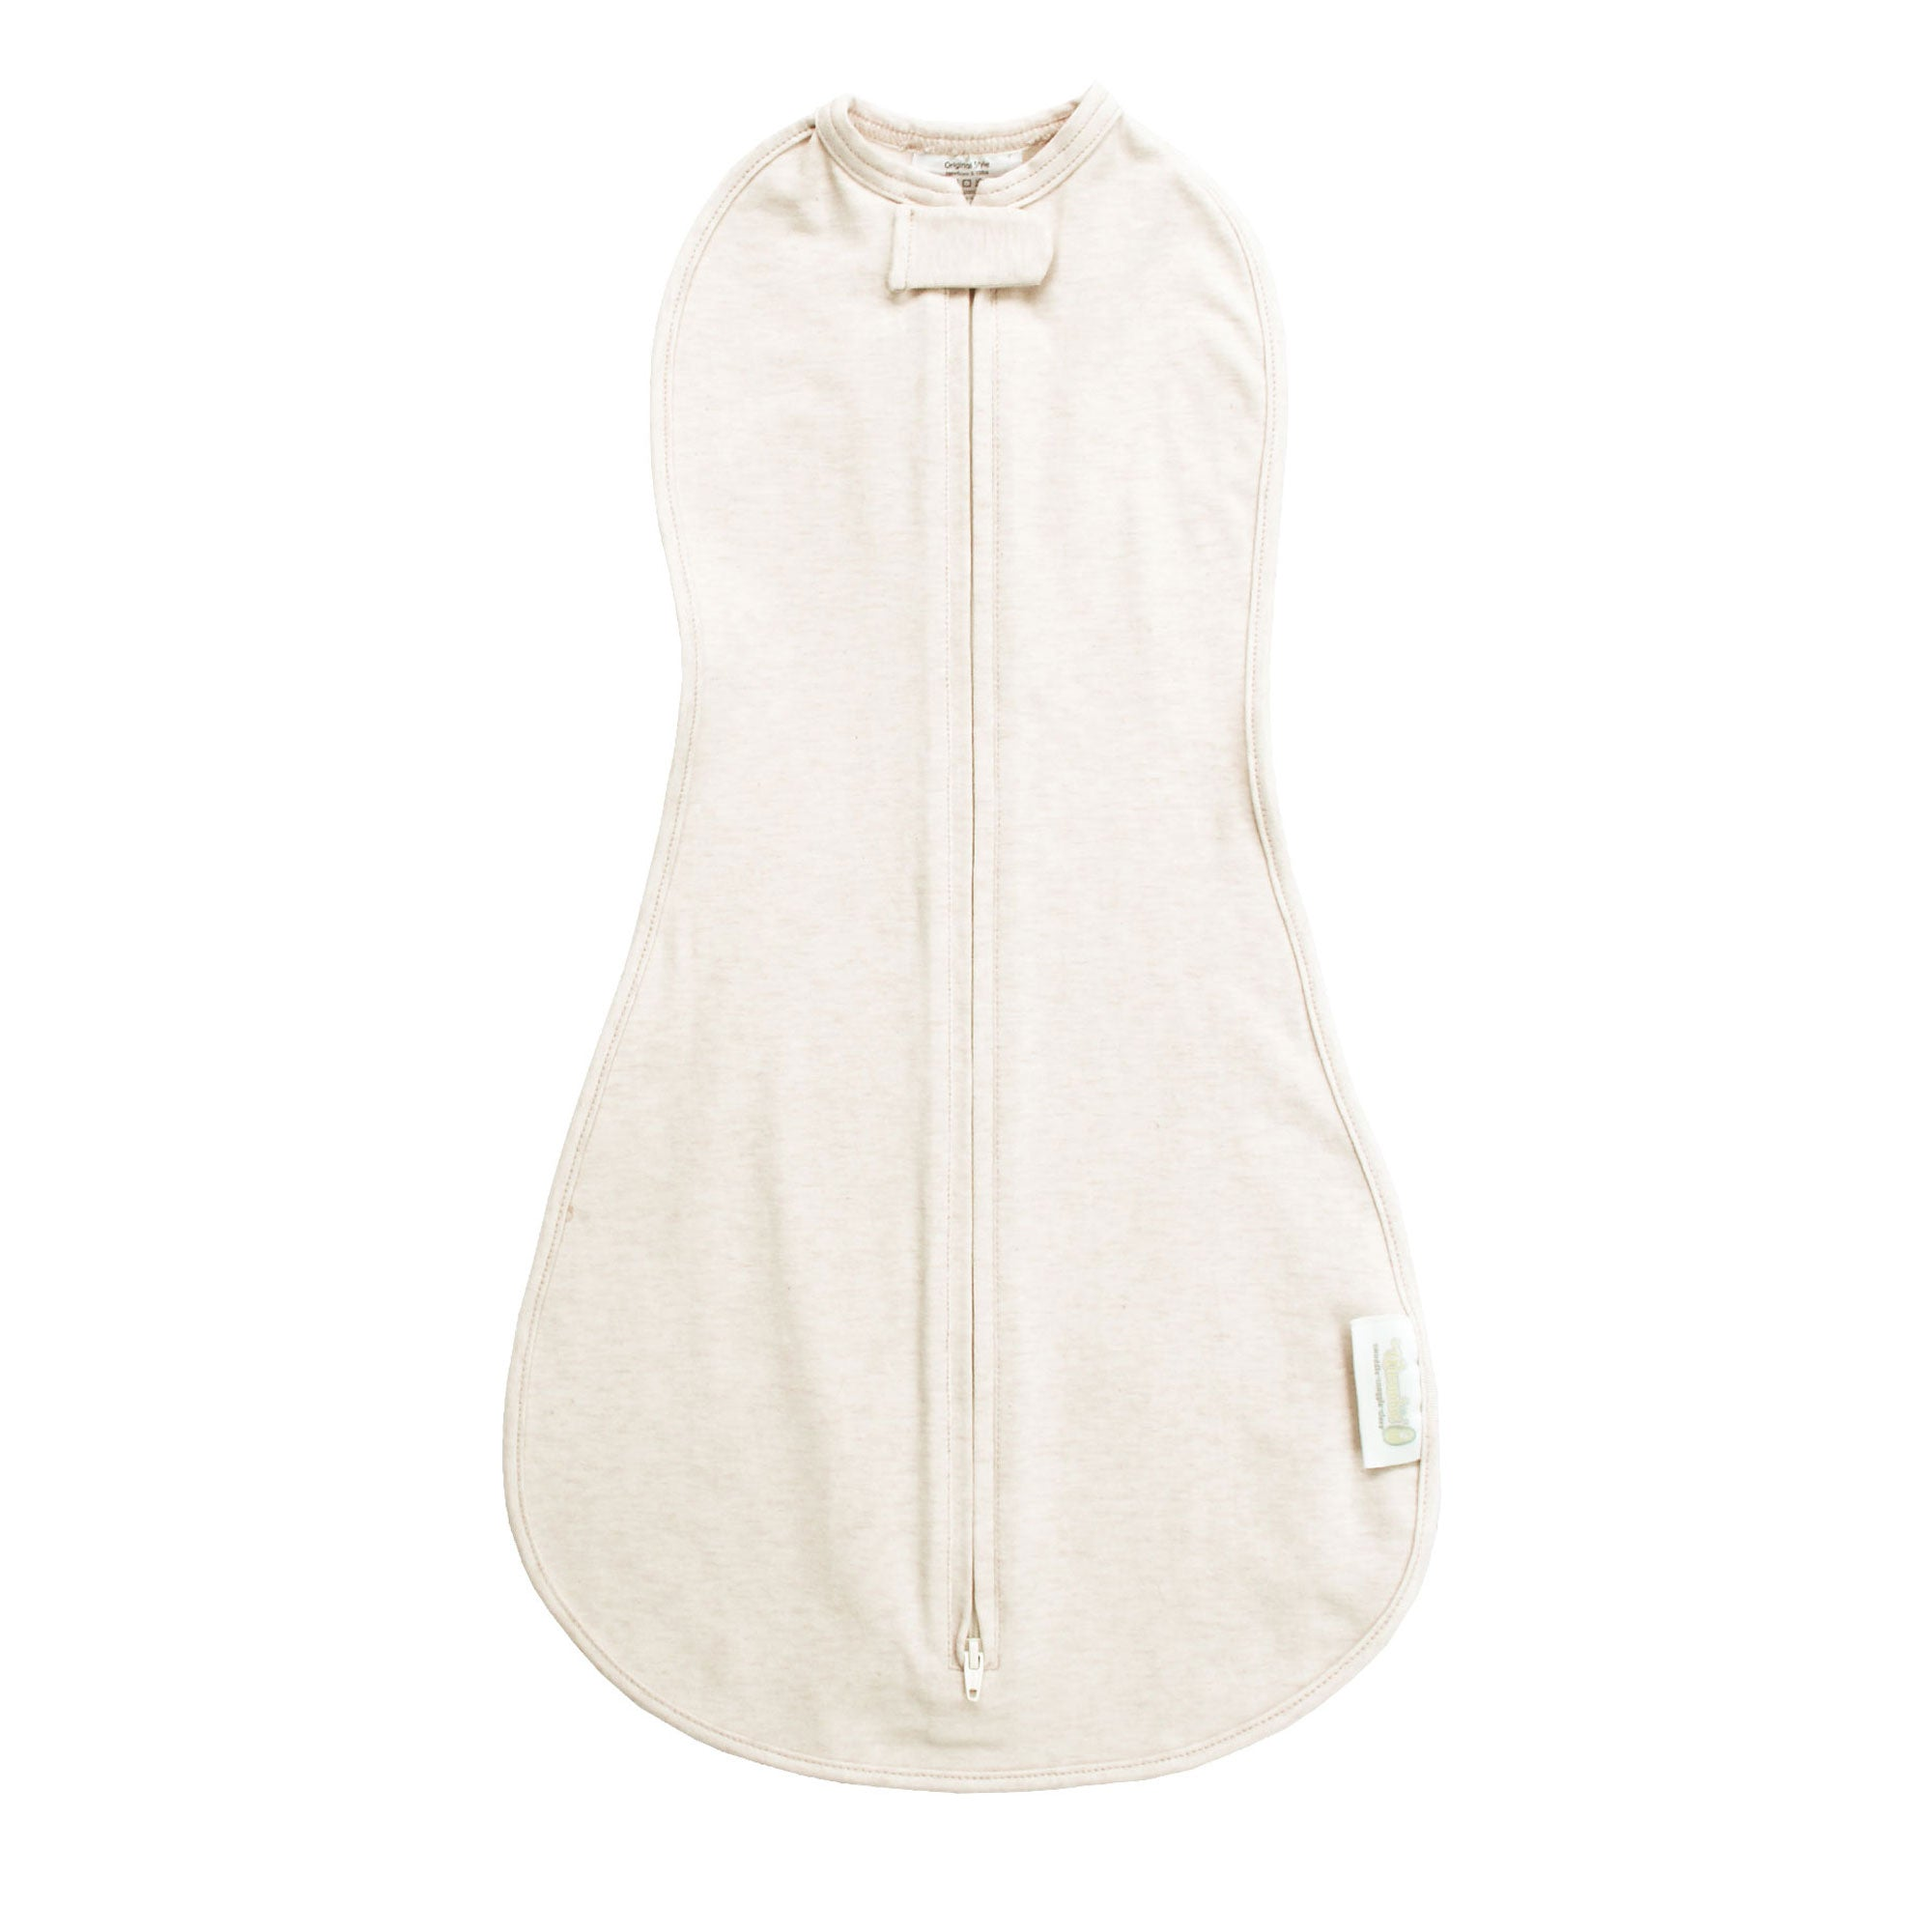 Woombie Organic Baby Swaddle - Vintage Linen Cream